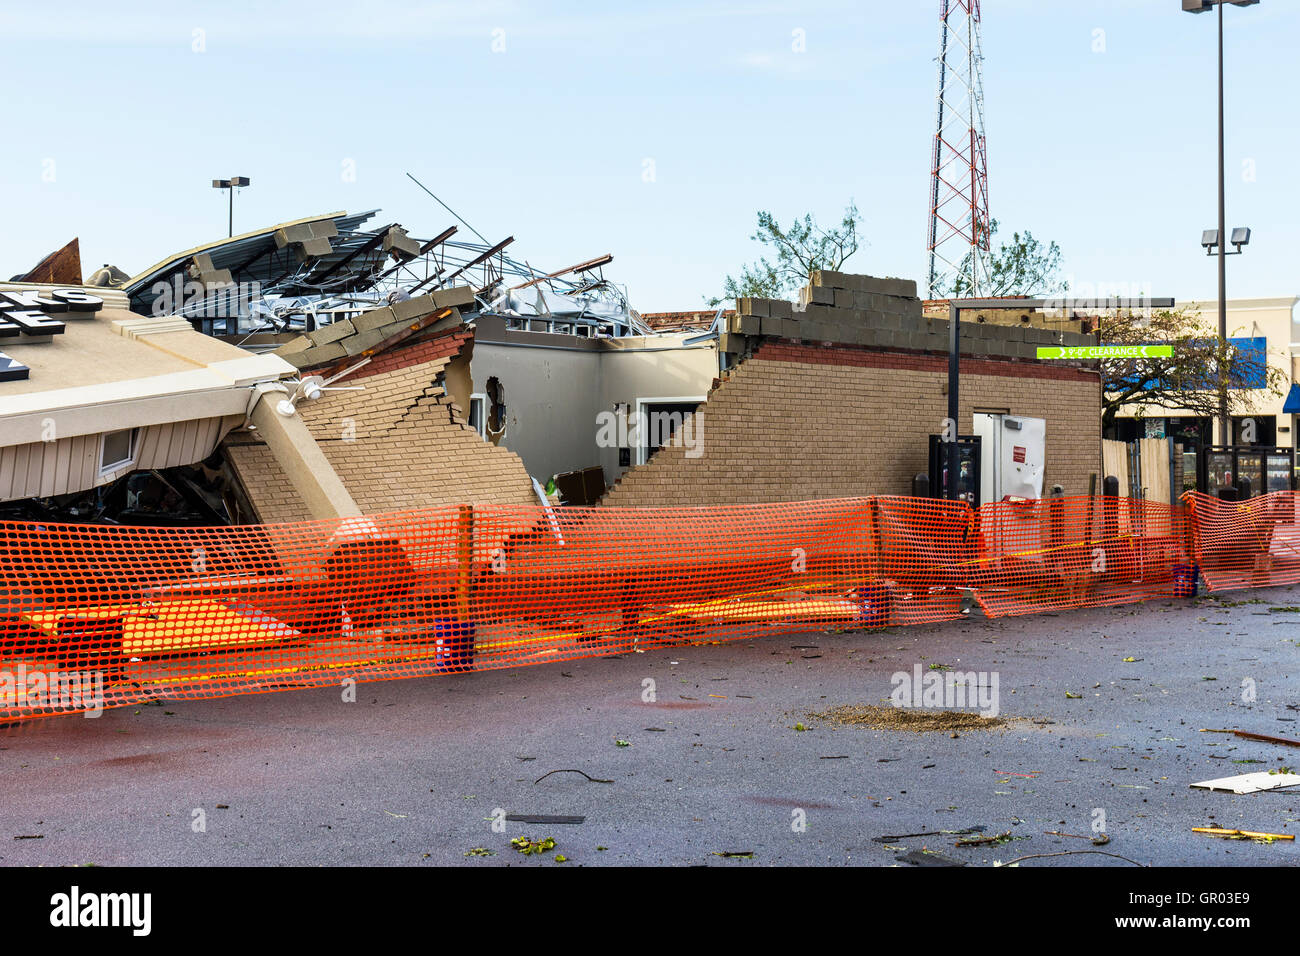 Kokomo - August 24, 2016: Several EF3 tornadoes touched down, one of which destroyed a local Starbucks 2 - Stock Image